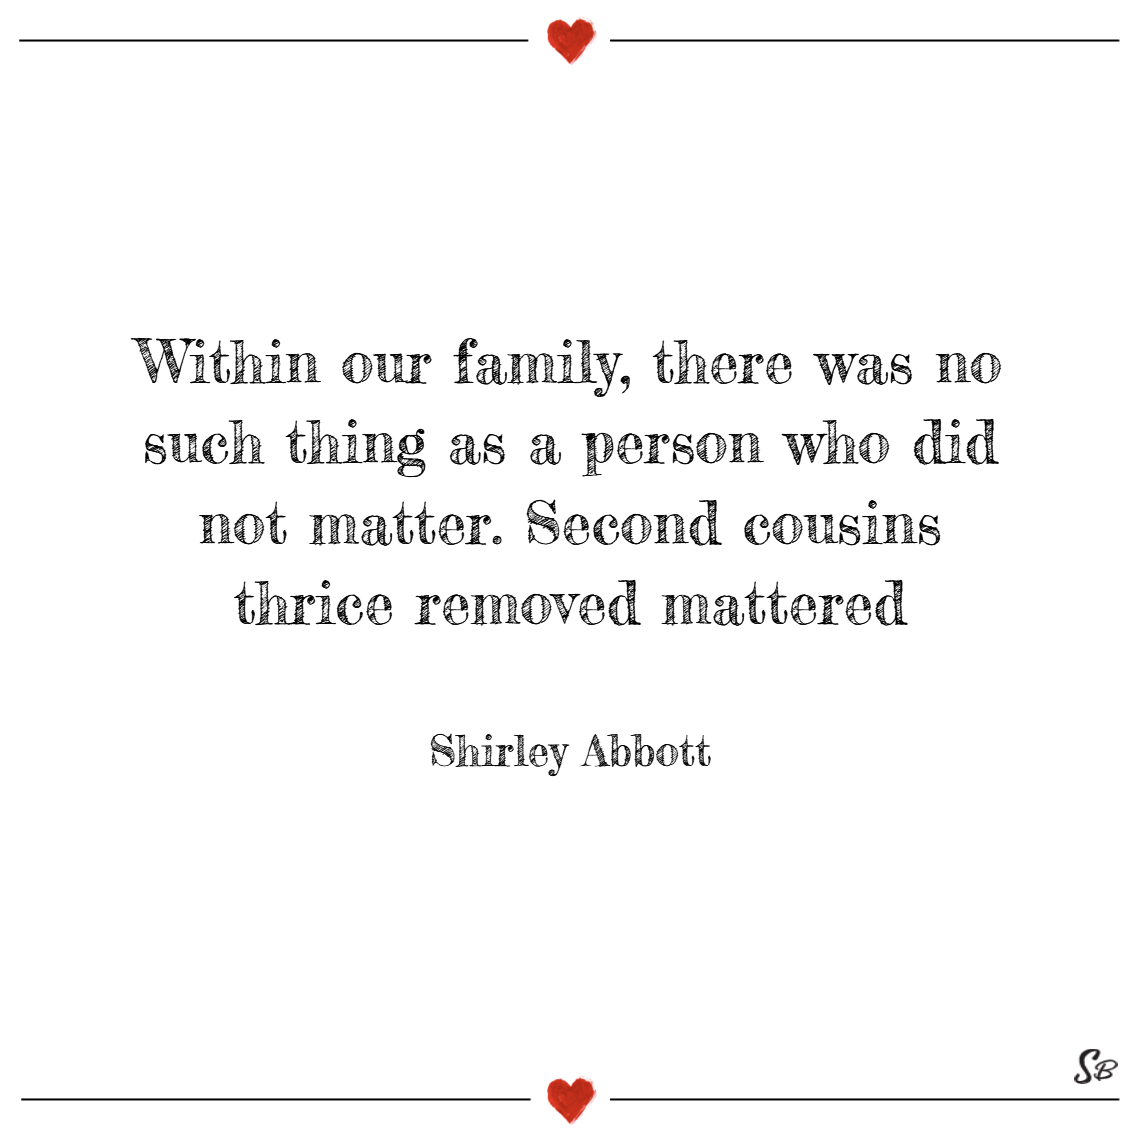 Within our family, there was no such thing as a person who did not matter. second cousins thrice removed mattered. – shirley abbott